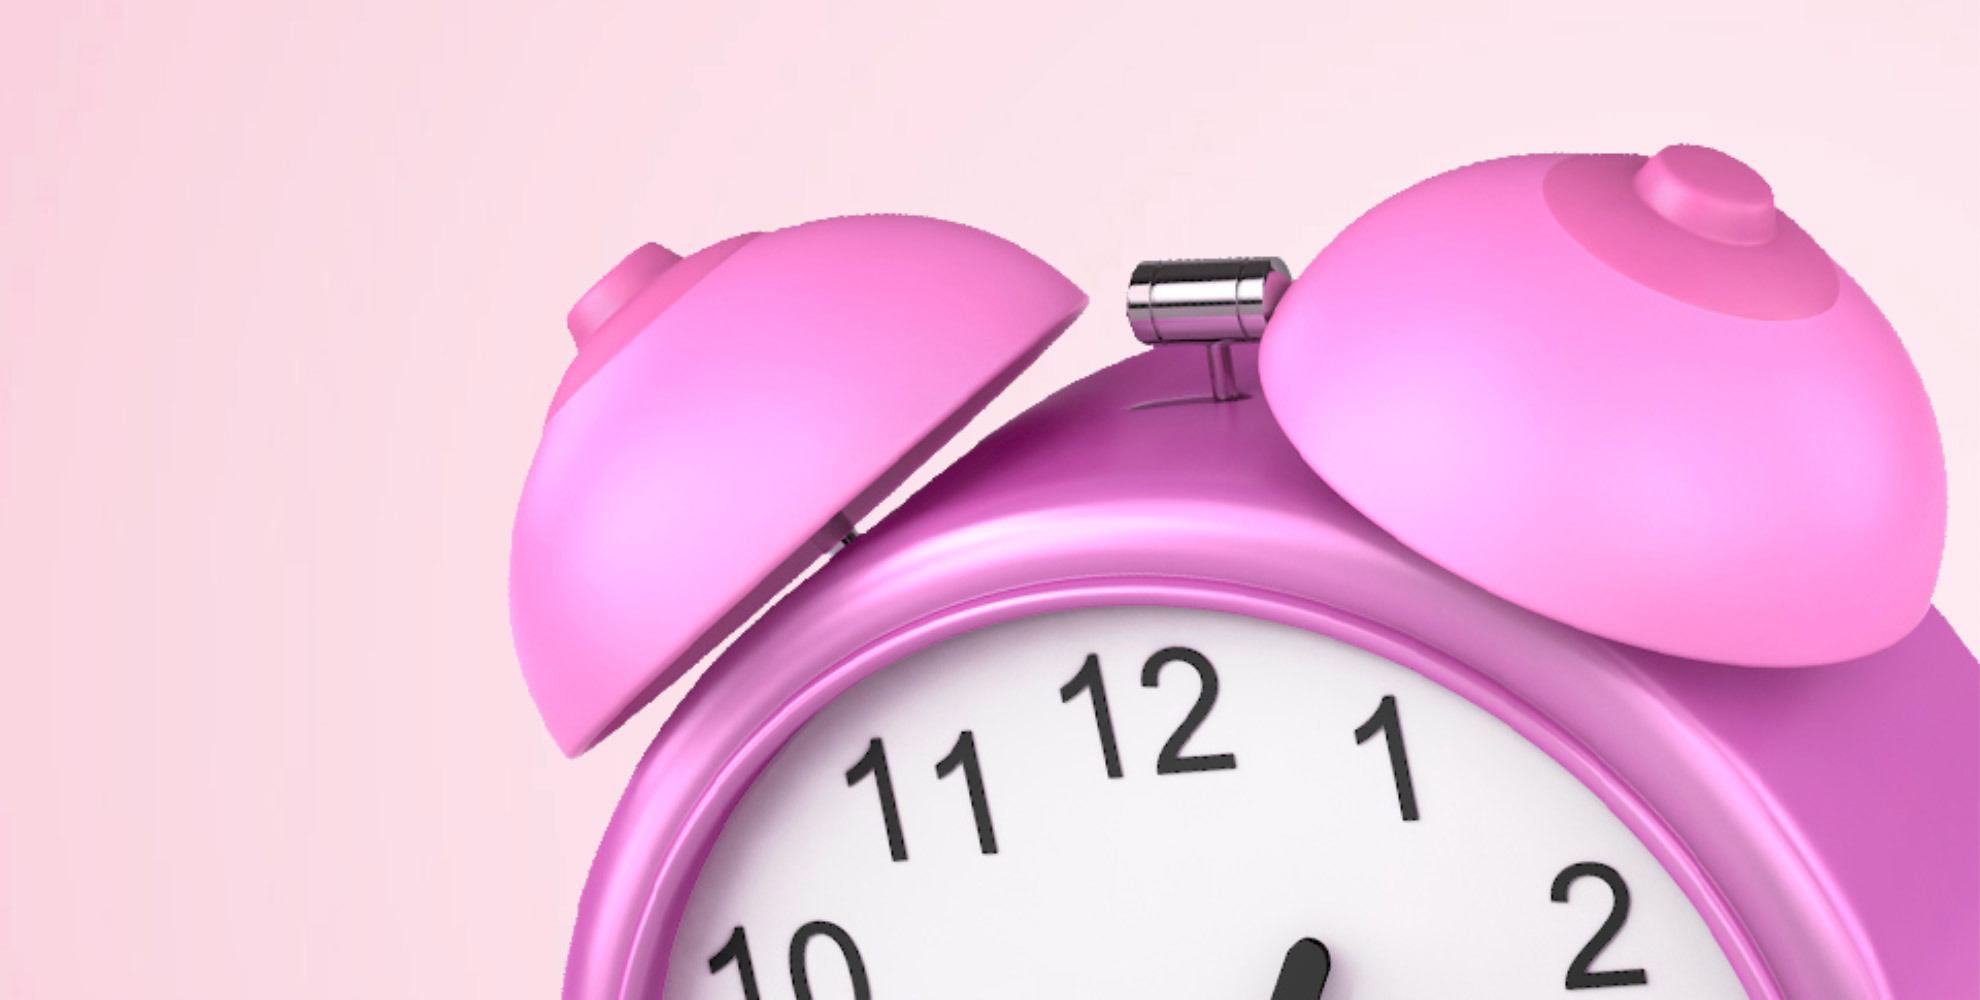 It's Time: Breast Cancer Awareness